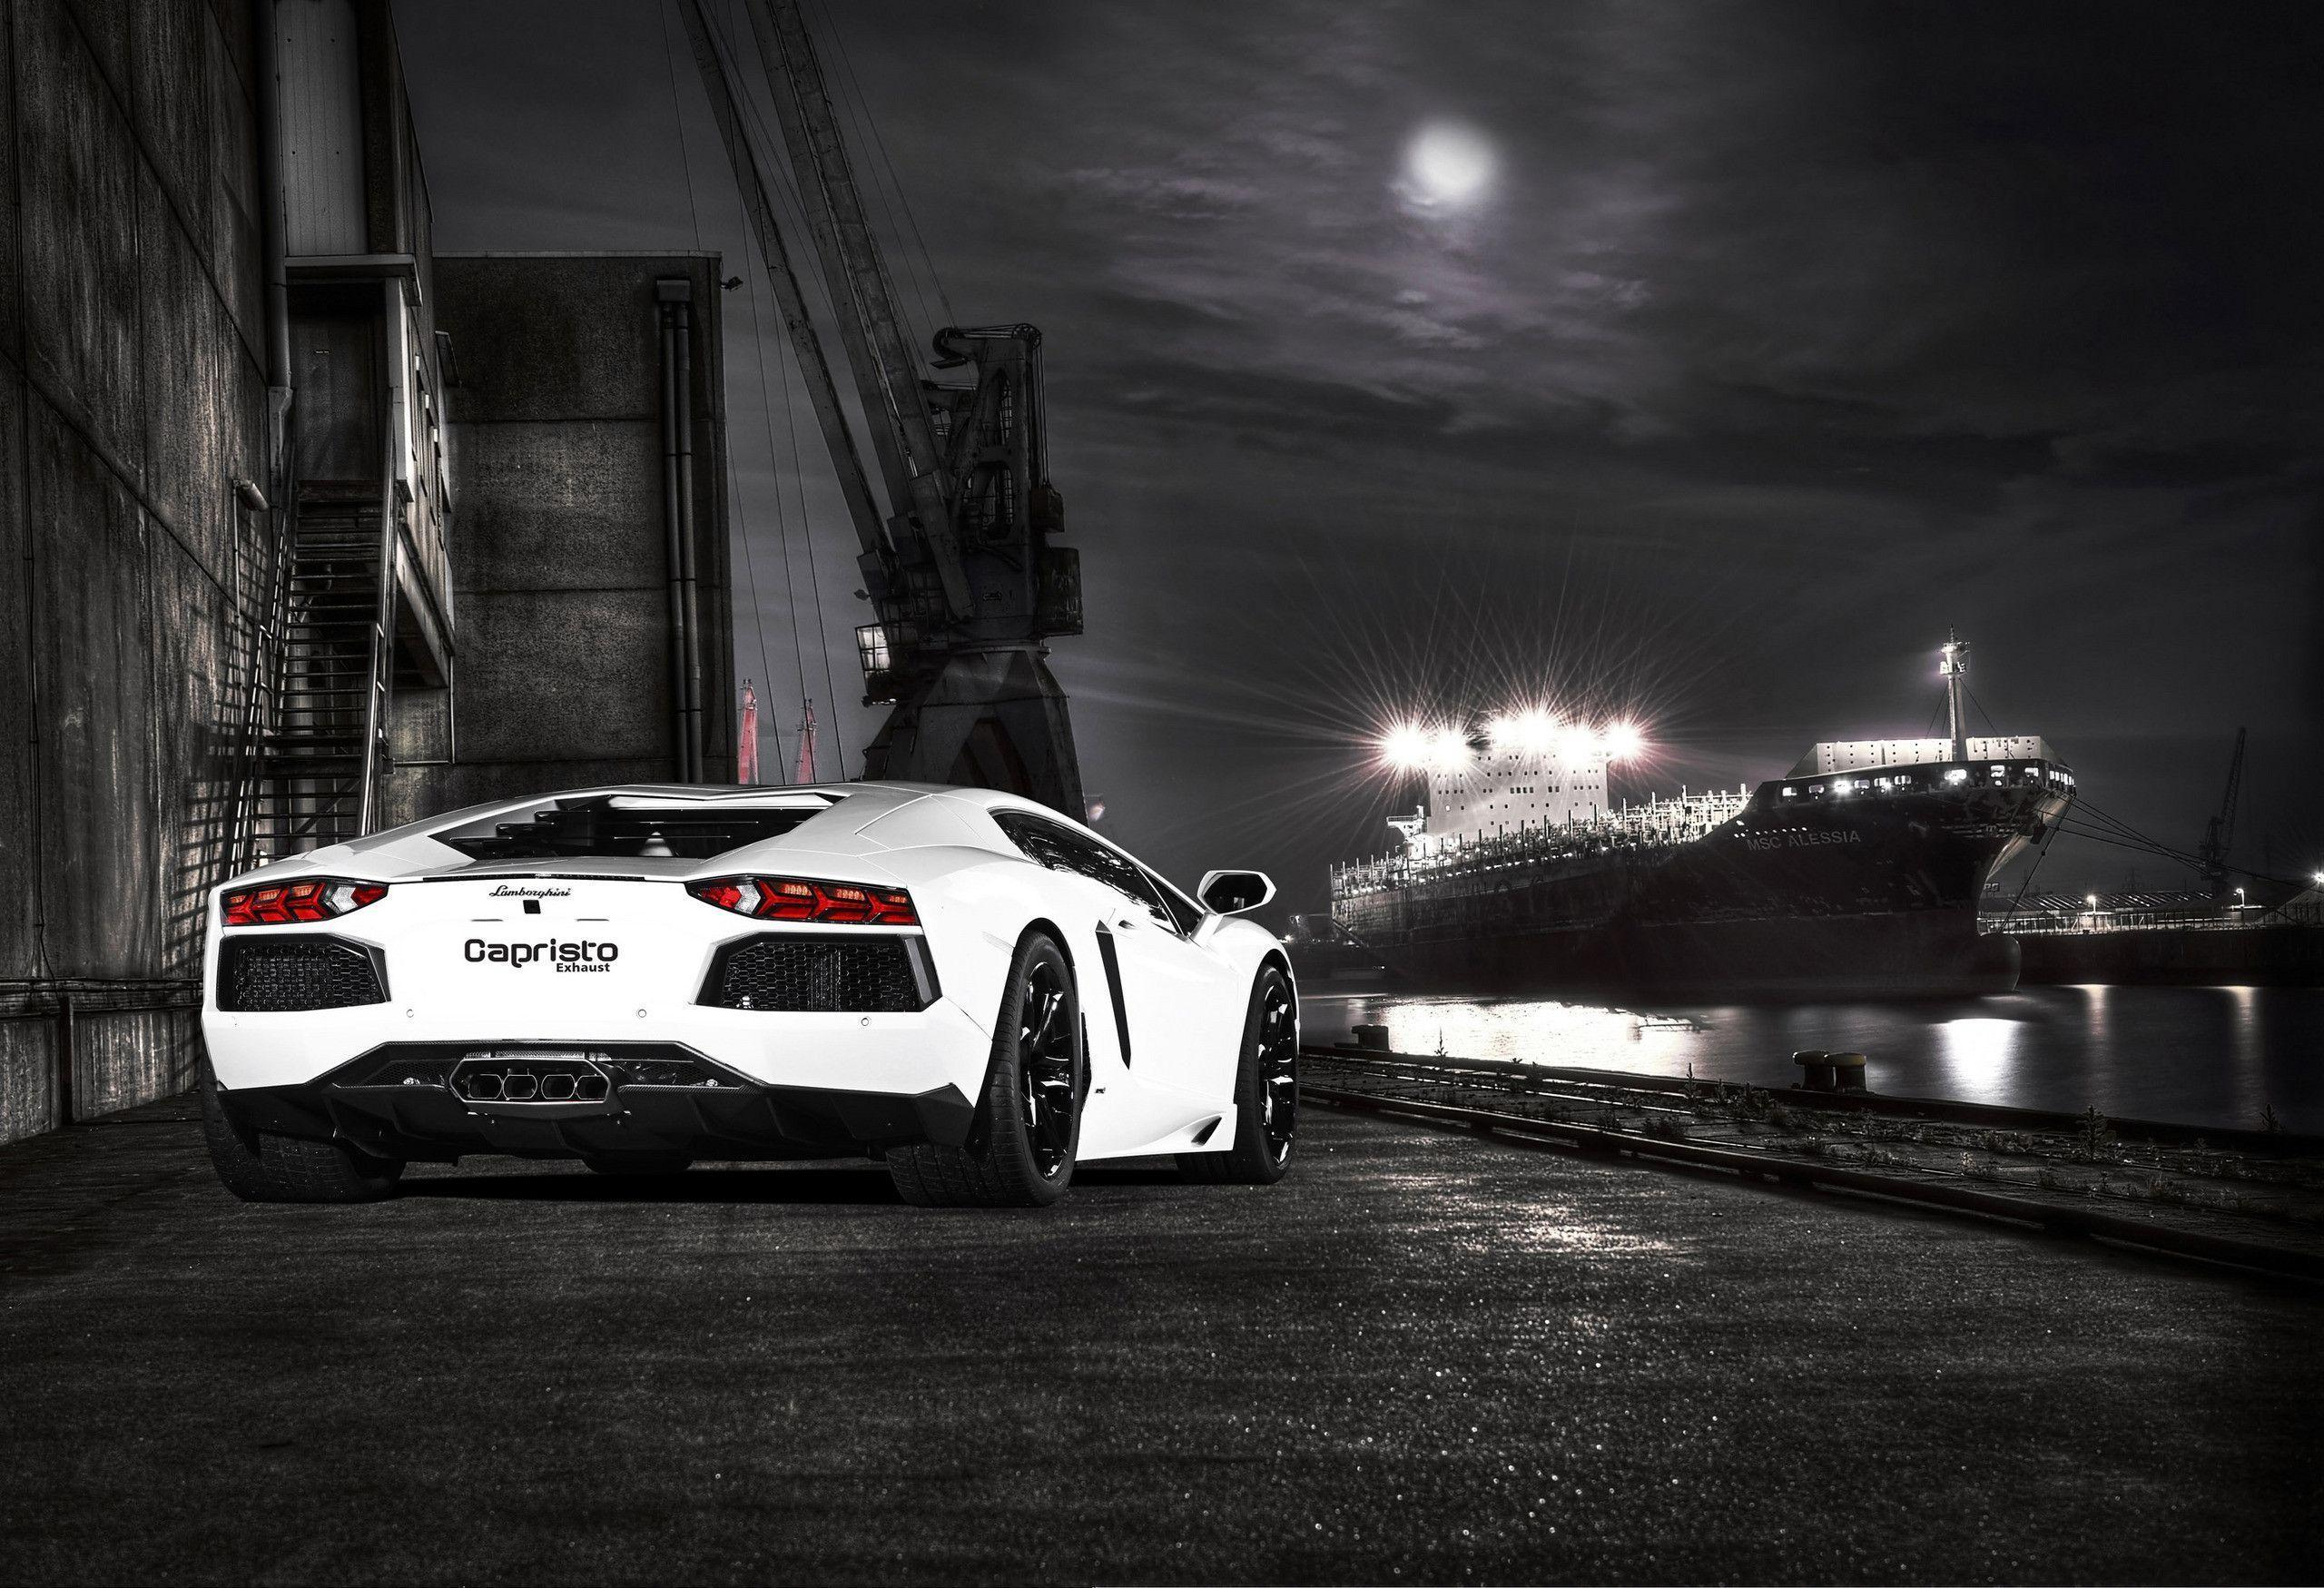 lamborghini aventador wallpaper hd black. nothing found for lamborghini aventador white wallpaper hd black